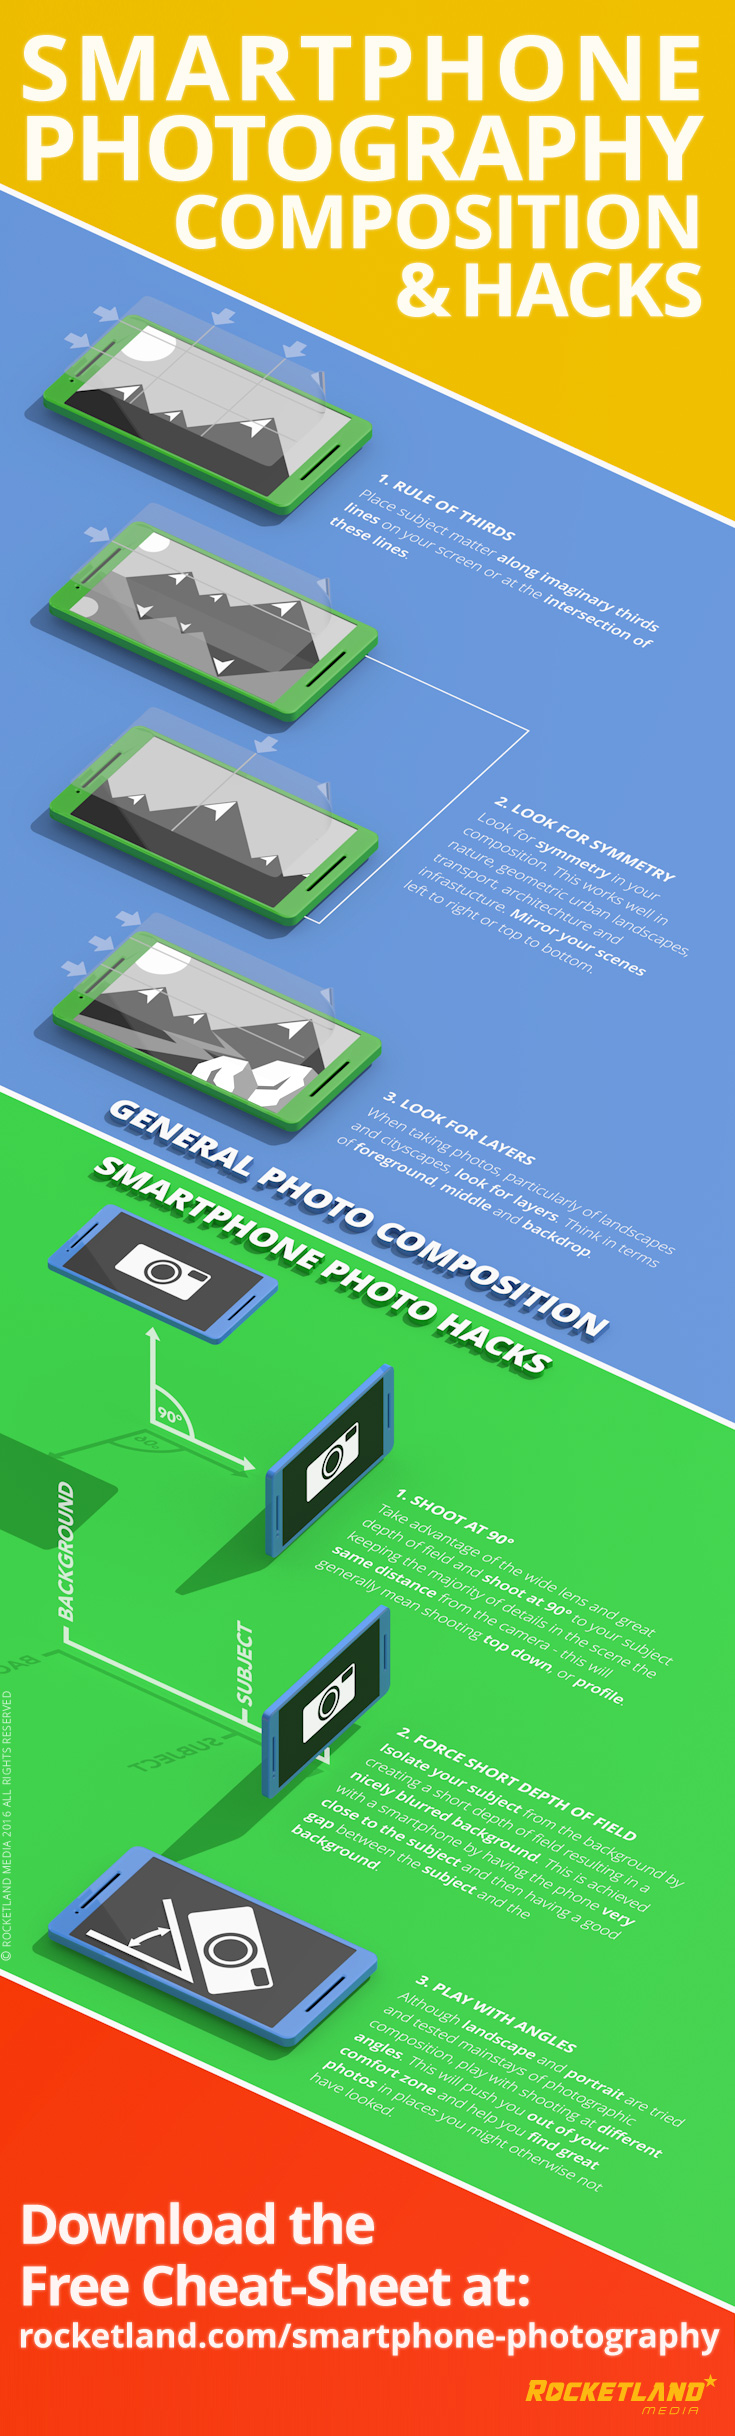 Infographic: Smartphone photography composition & hacks. Use your smartphone to create content for your business.